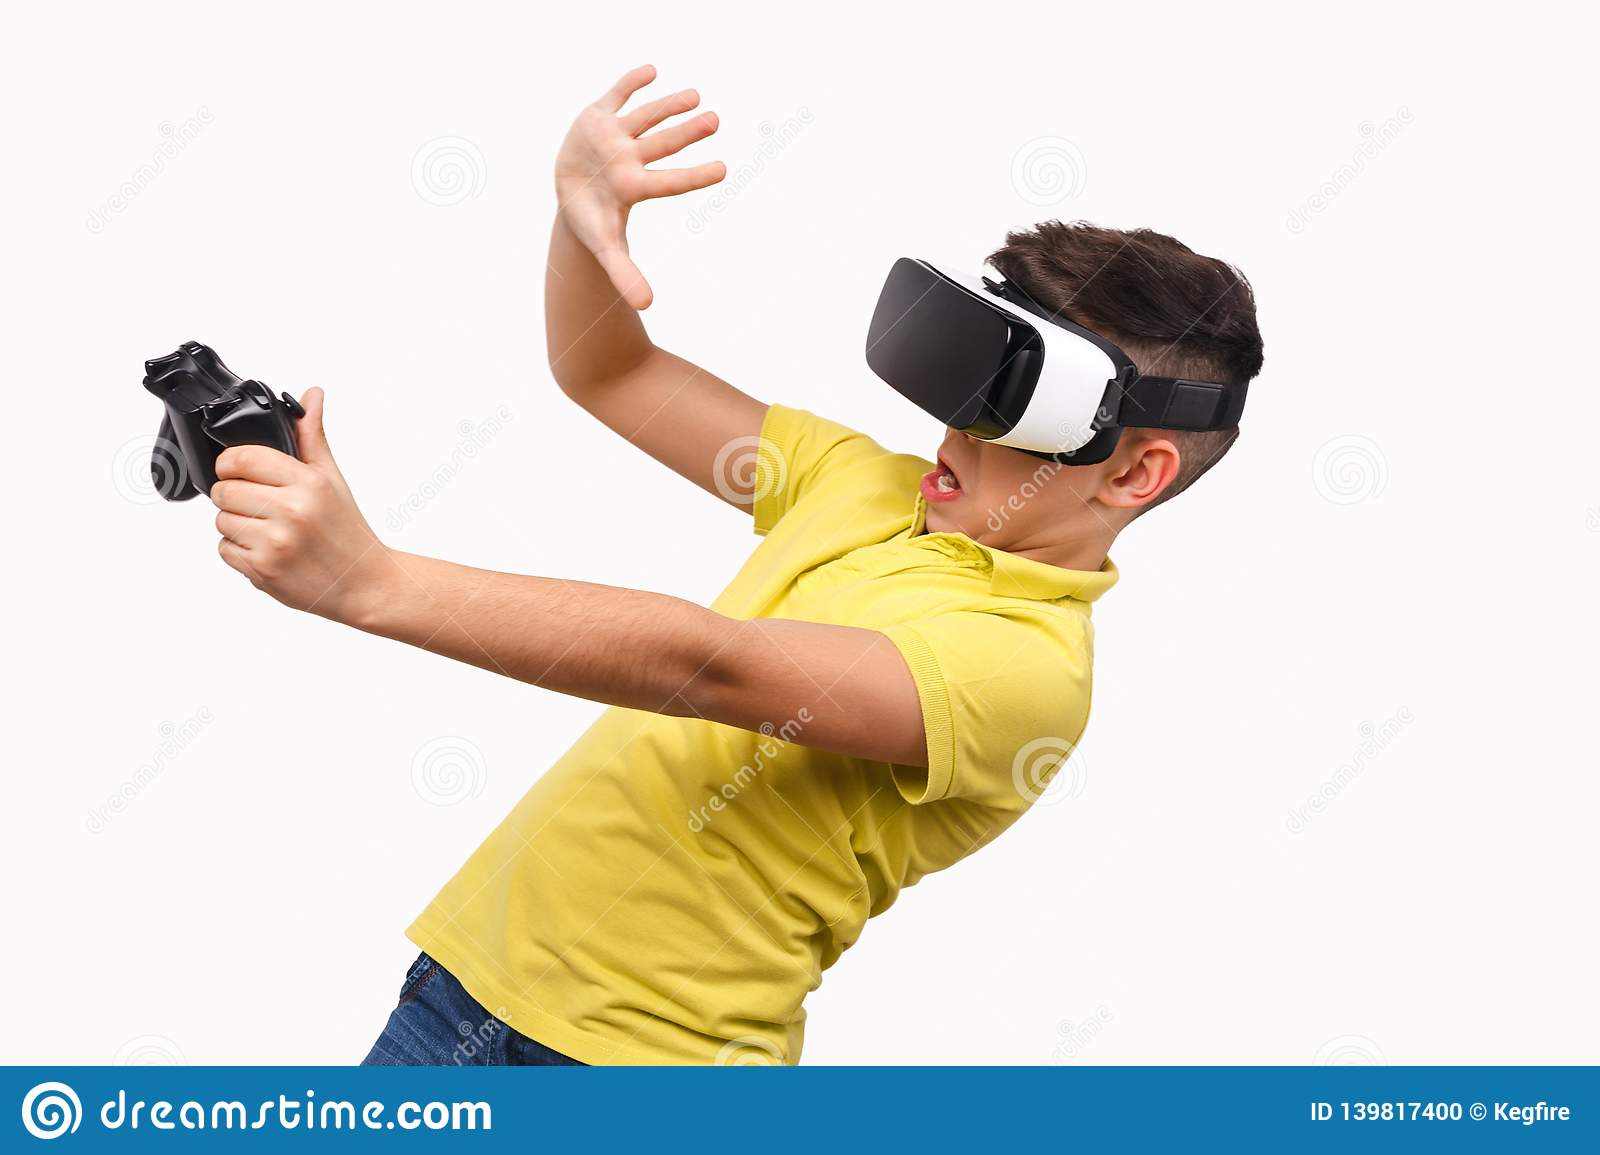 bcd650f6ffe Funny boy in VR headset holding controller and leaning back with shocked  grimace while standing on white background